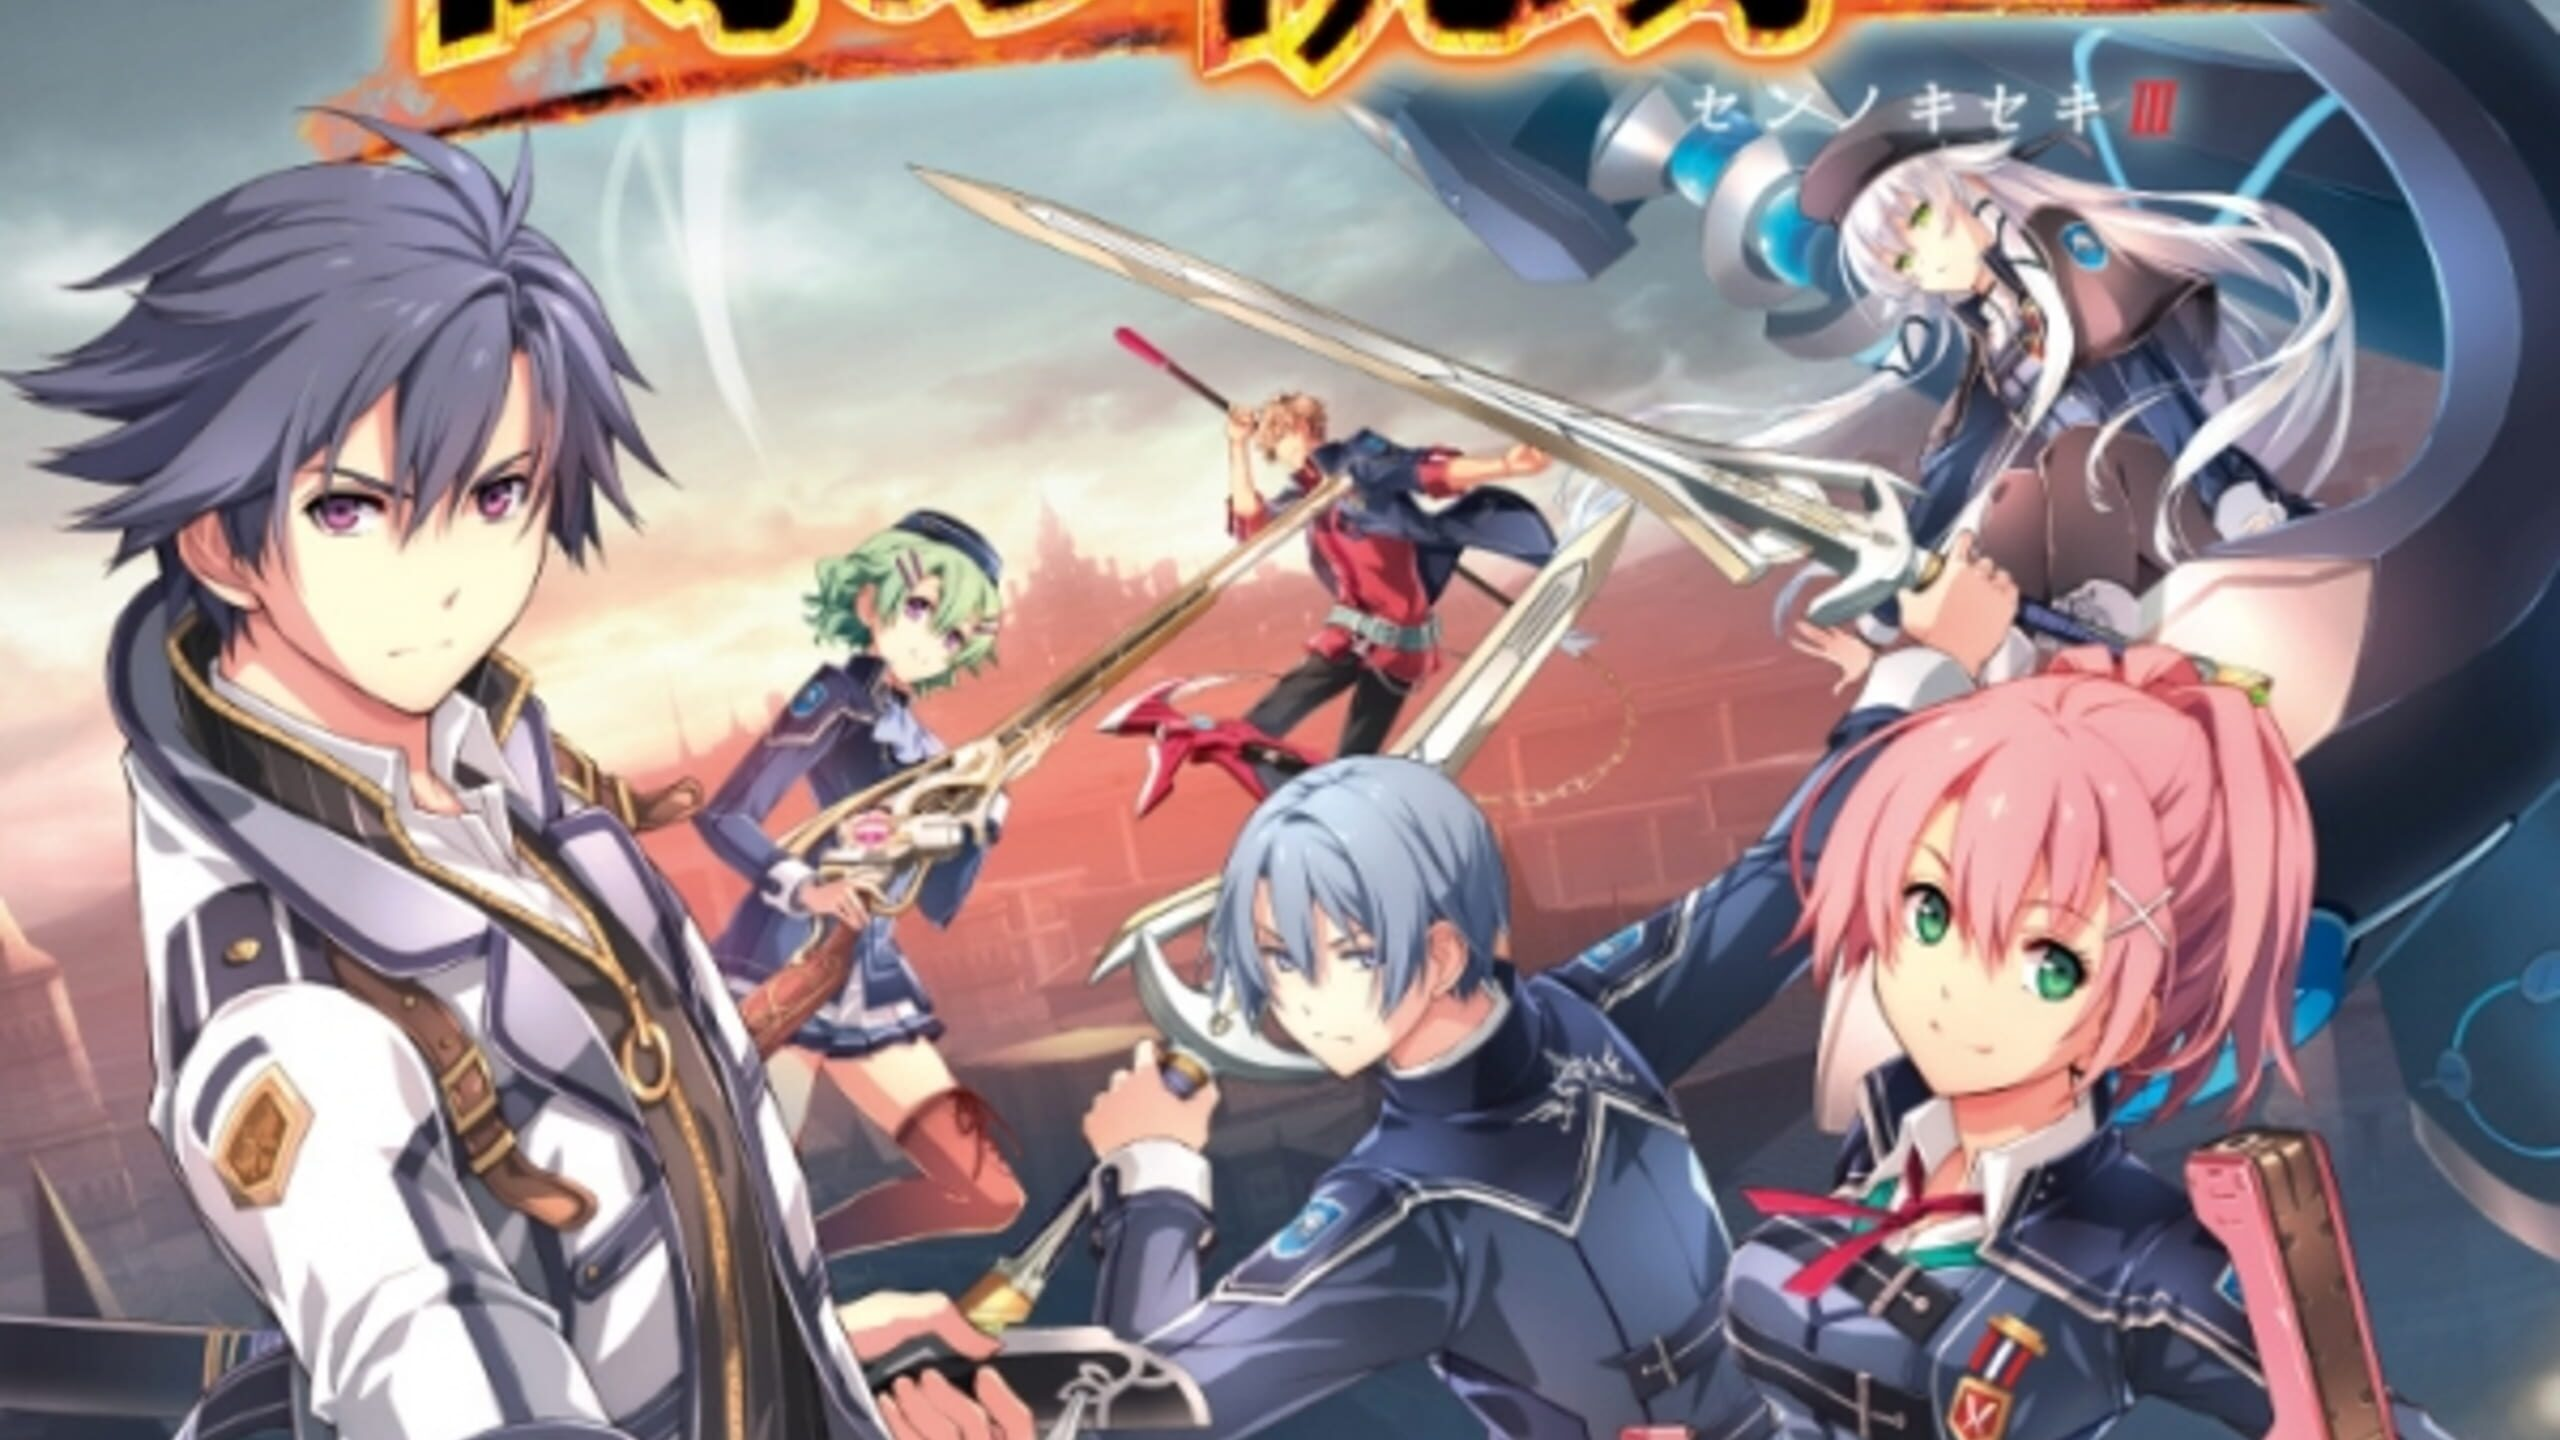 game cover art for The Legend of Heroes: Trails of Cold Steel III